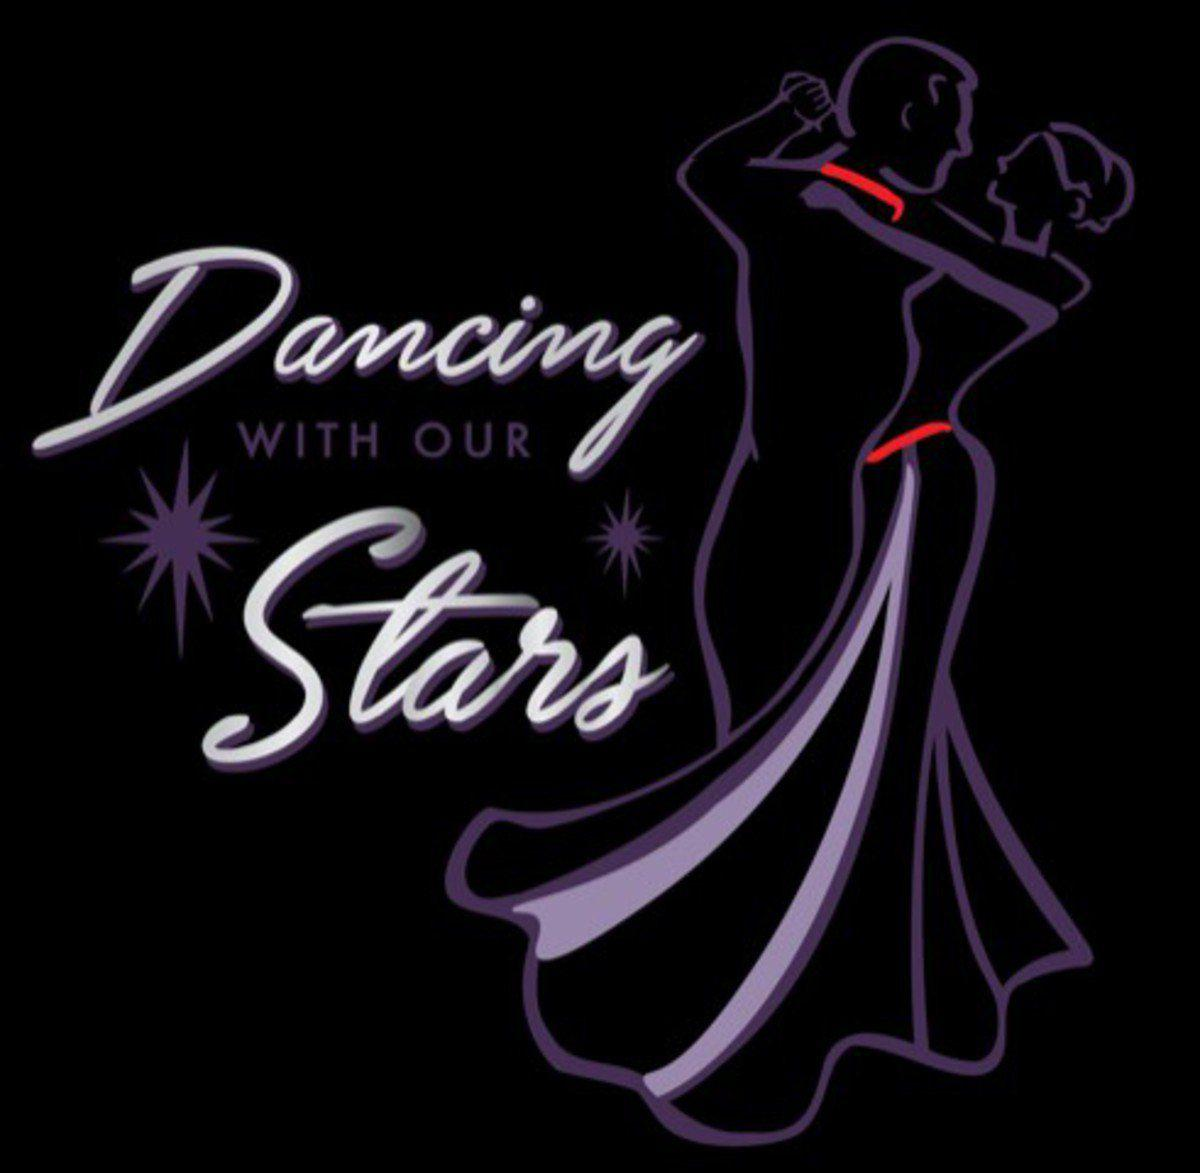 Robinsons, Noffsingers to compete in next Dancing With Our Stars